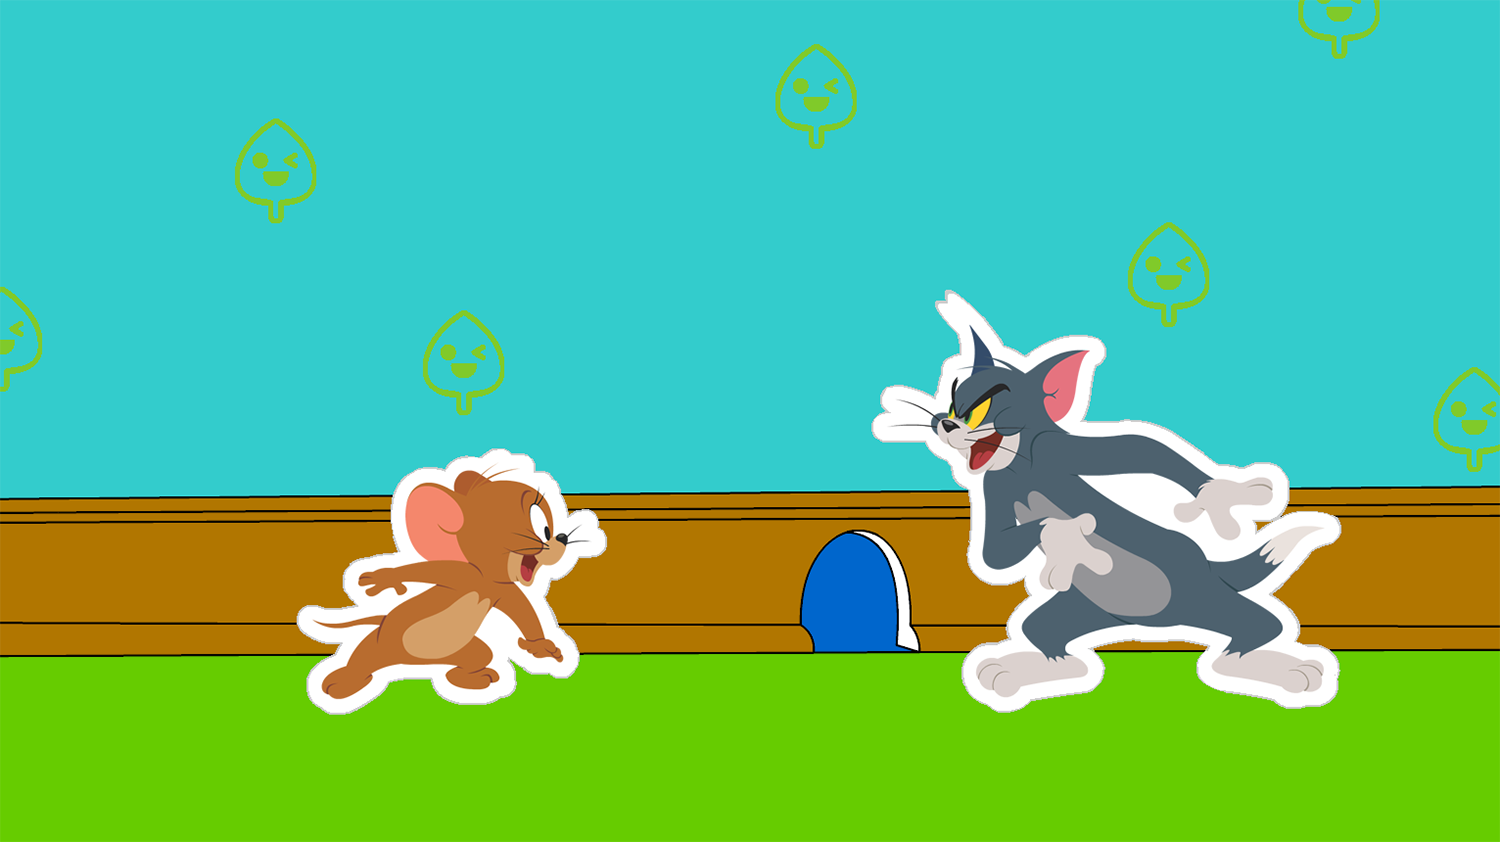 Tom and Jerry Arts and Crafts Page Complete Screenshots.